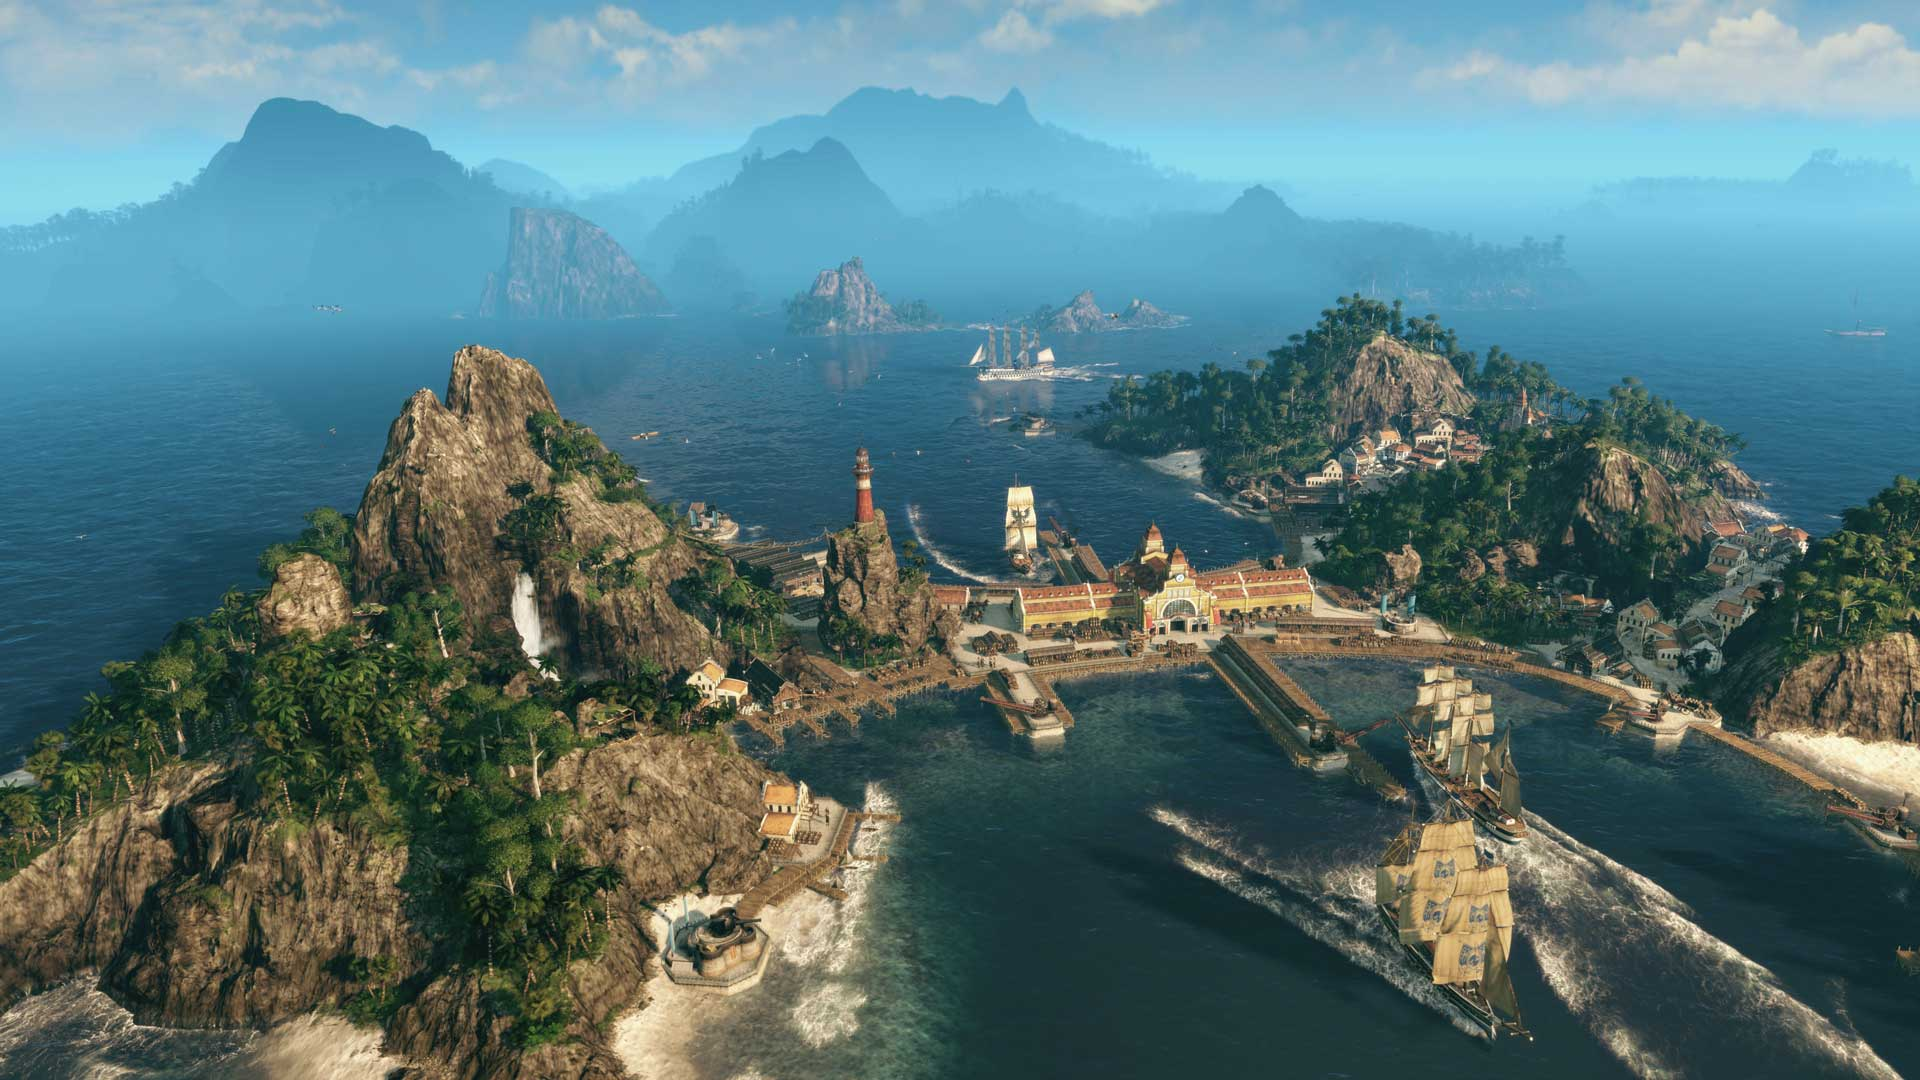 What can you expect in Anno 1800?